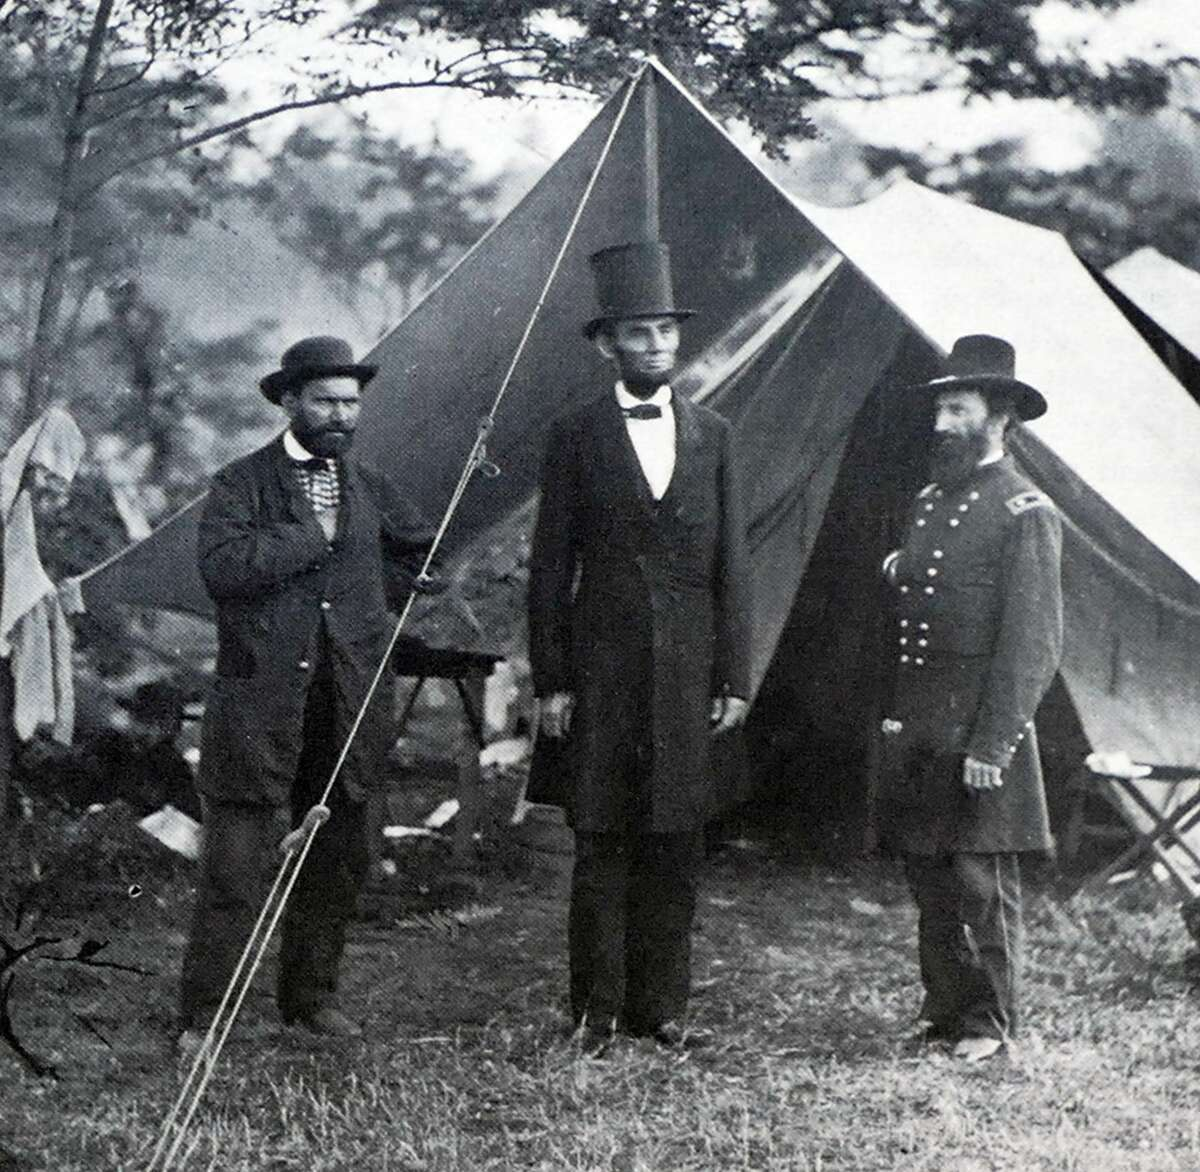 >>Click through to see historic photos of the American Civil War Left to Right: Photograph of Allan Pinkerton (1819-1884) President Abraham Lincoln (1809-1865) and John Alexander McClernand (1812-1900) during the Battle of Antietam. Dated 19th Century.